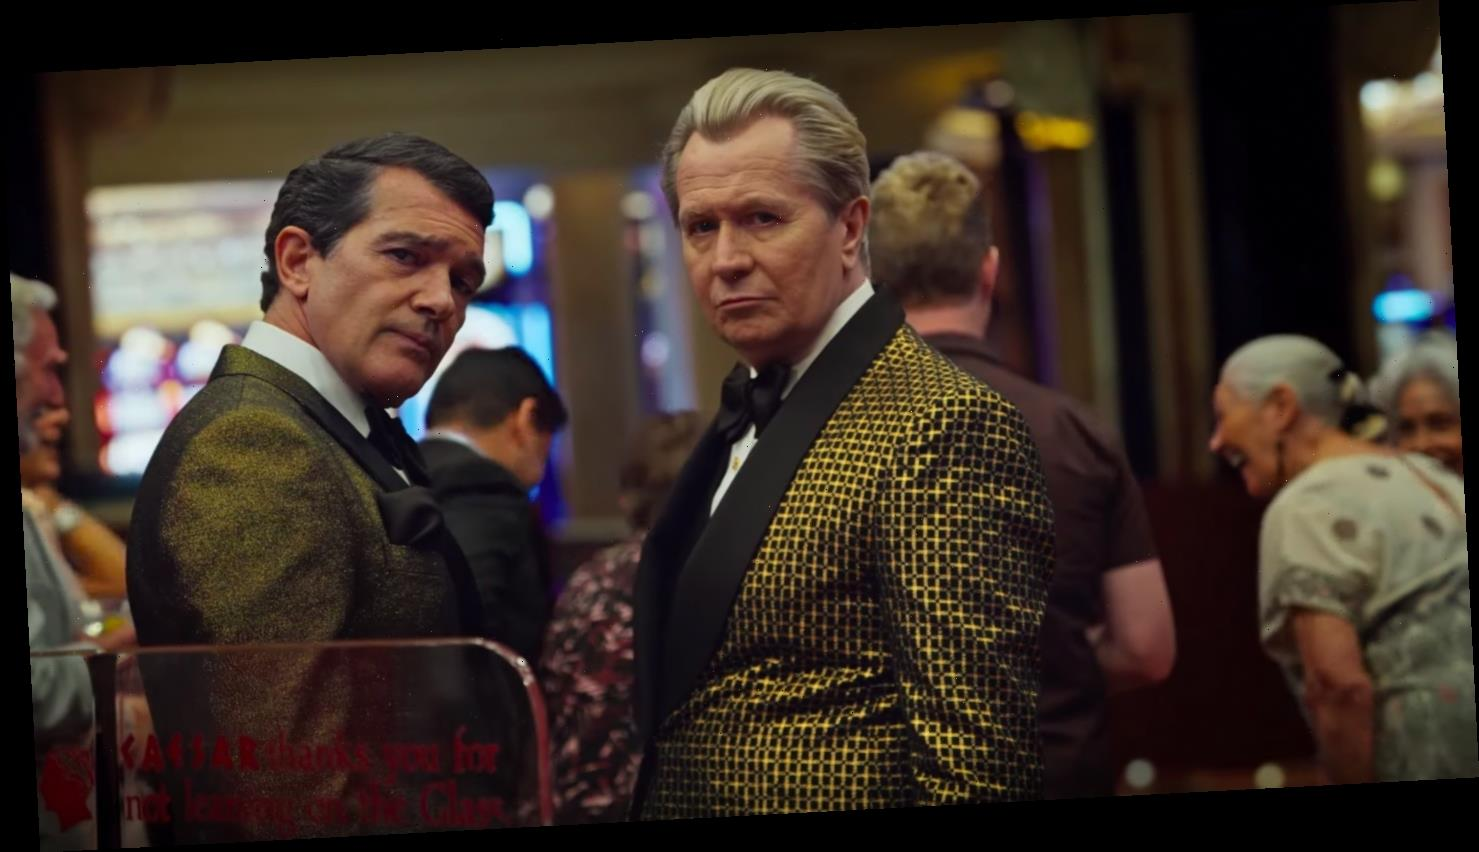 Trailer Round-Up: 'Fire in Paradise','Holiday in the Wild','The Man Without Gravity','Cold Brook','The Apollo','Atypical', 'The Laundromat'